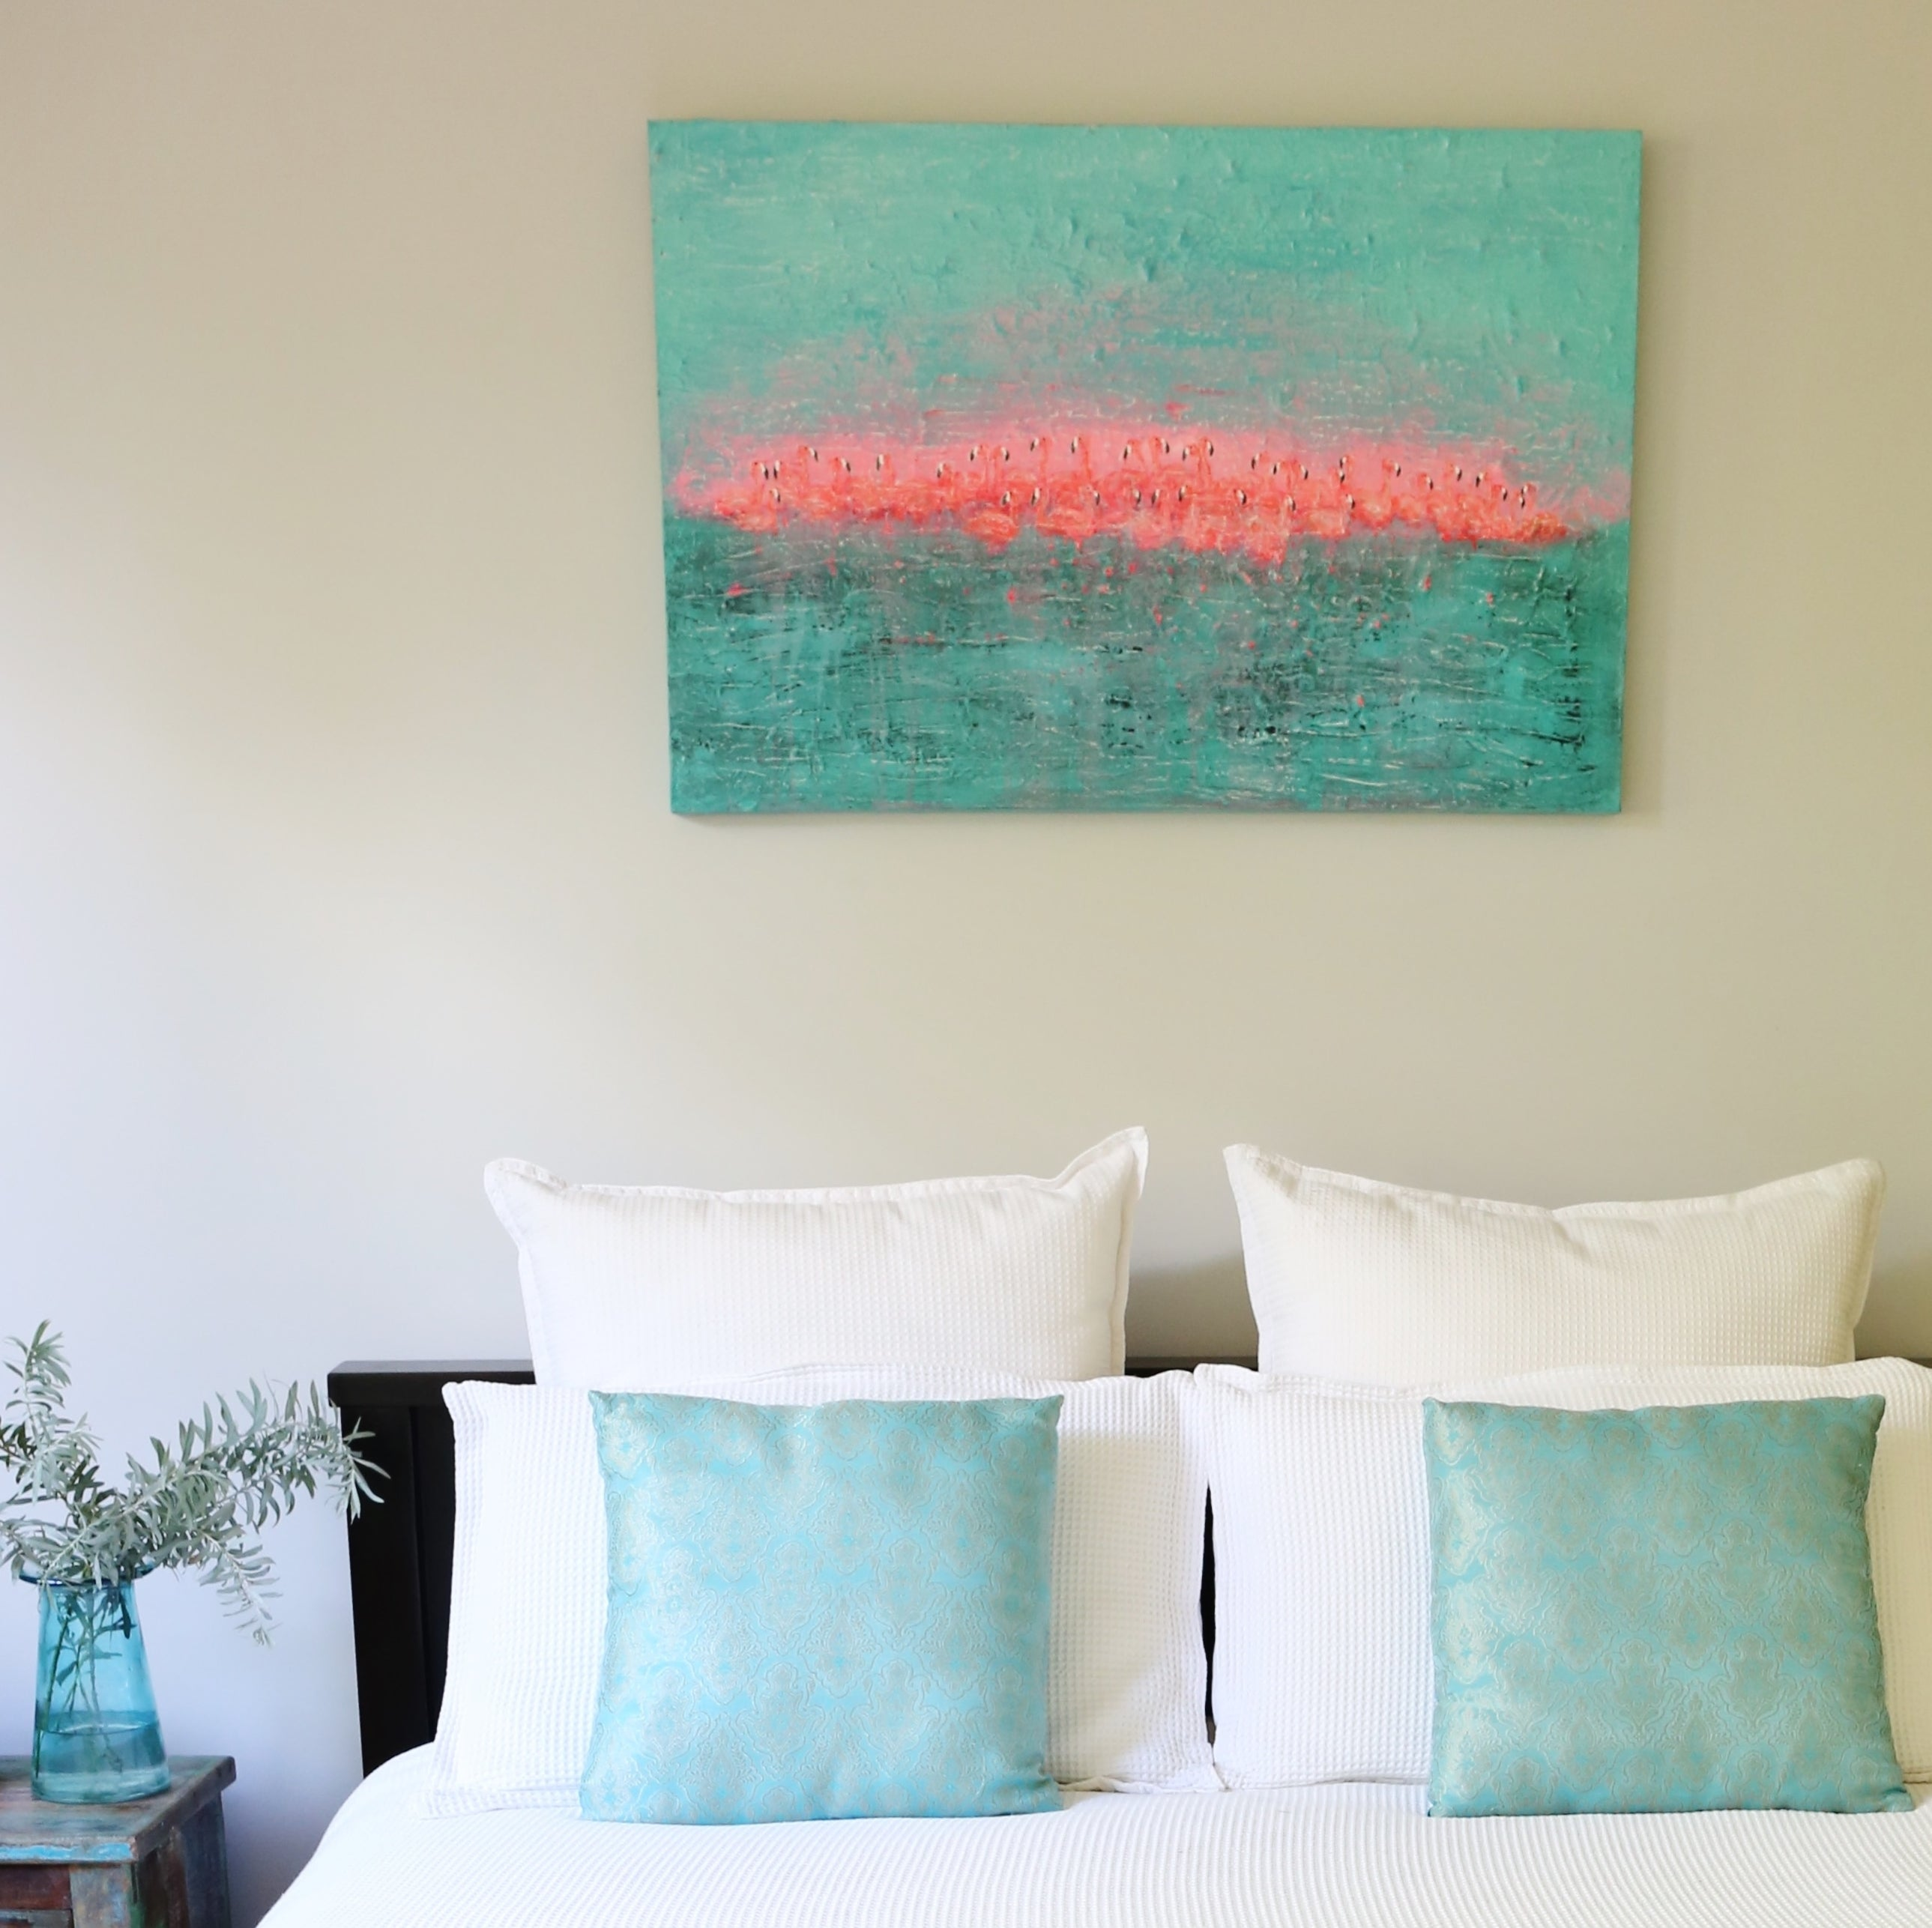 Bedroom Styling, Flamingos original mixed media art work on canvas by Jacinta Payne, Melbourne Australia